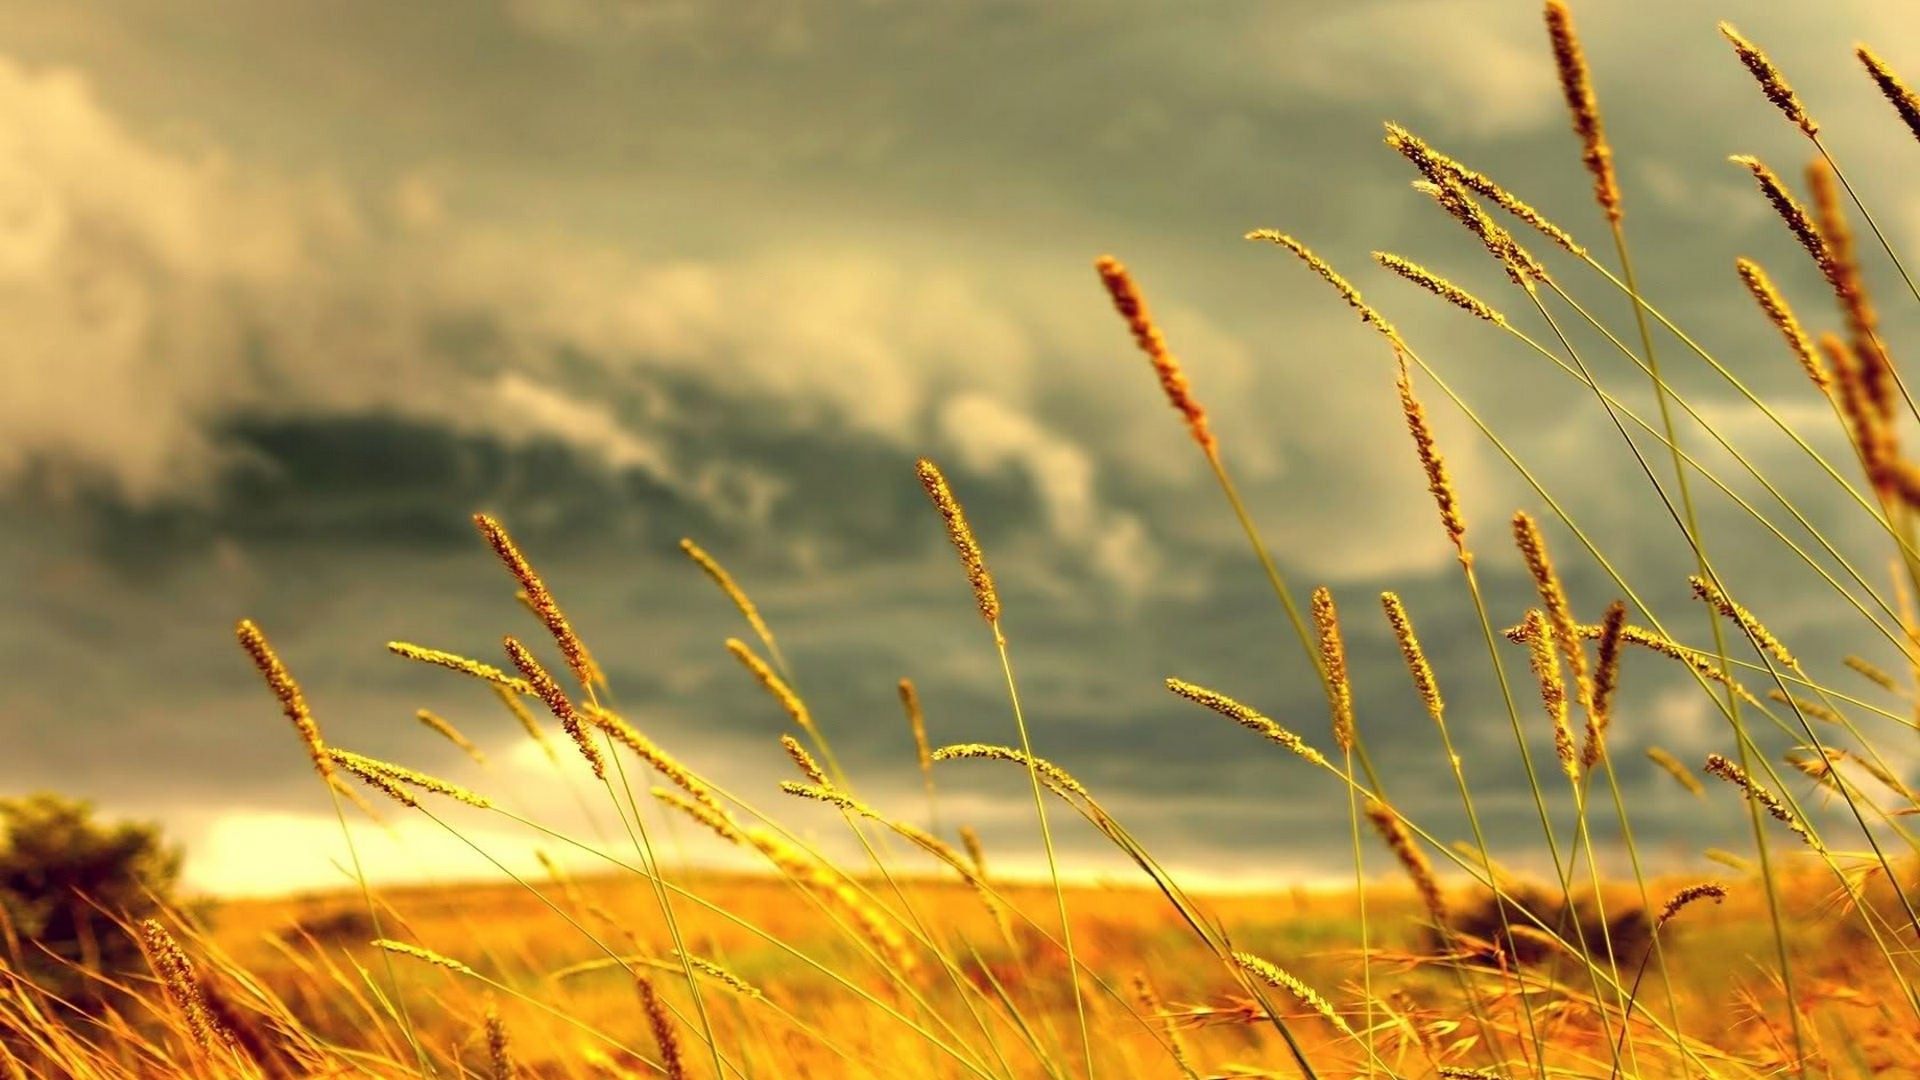 landscapes clouds fields nature rye land skyscapes Wallpapers 1920x1080